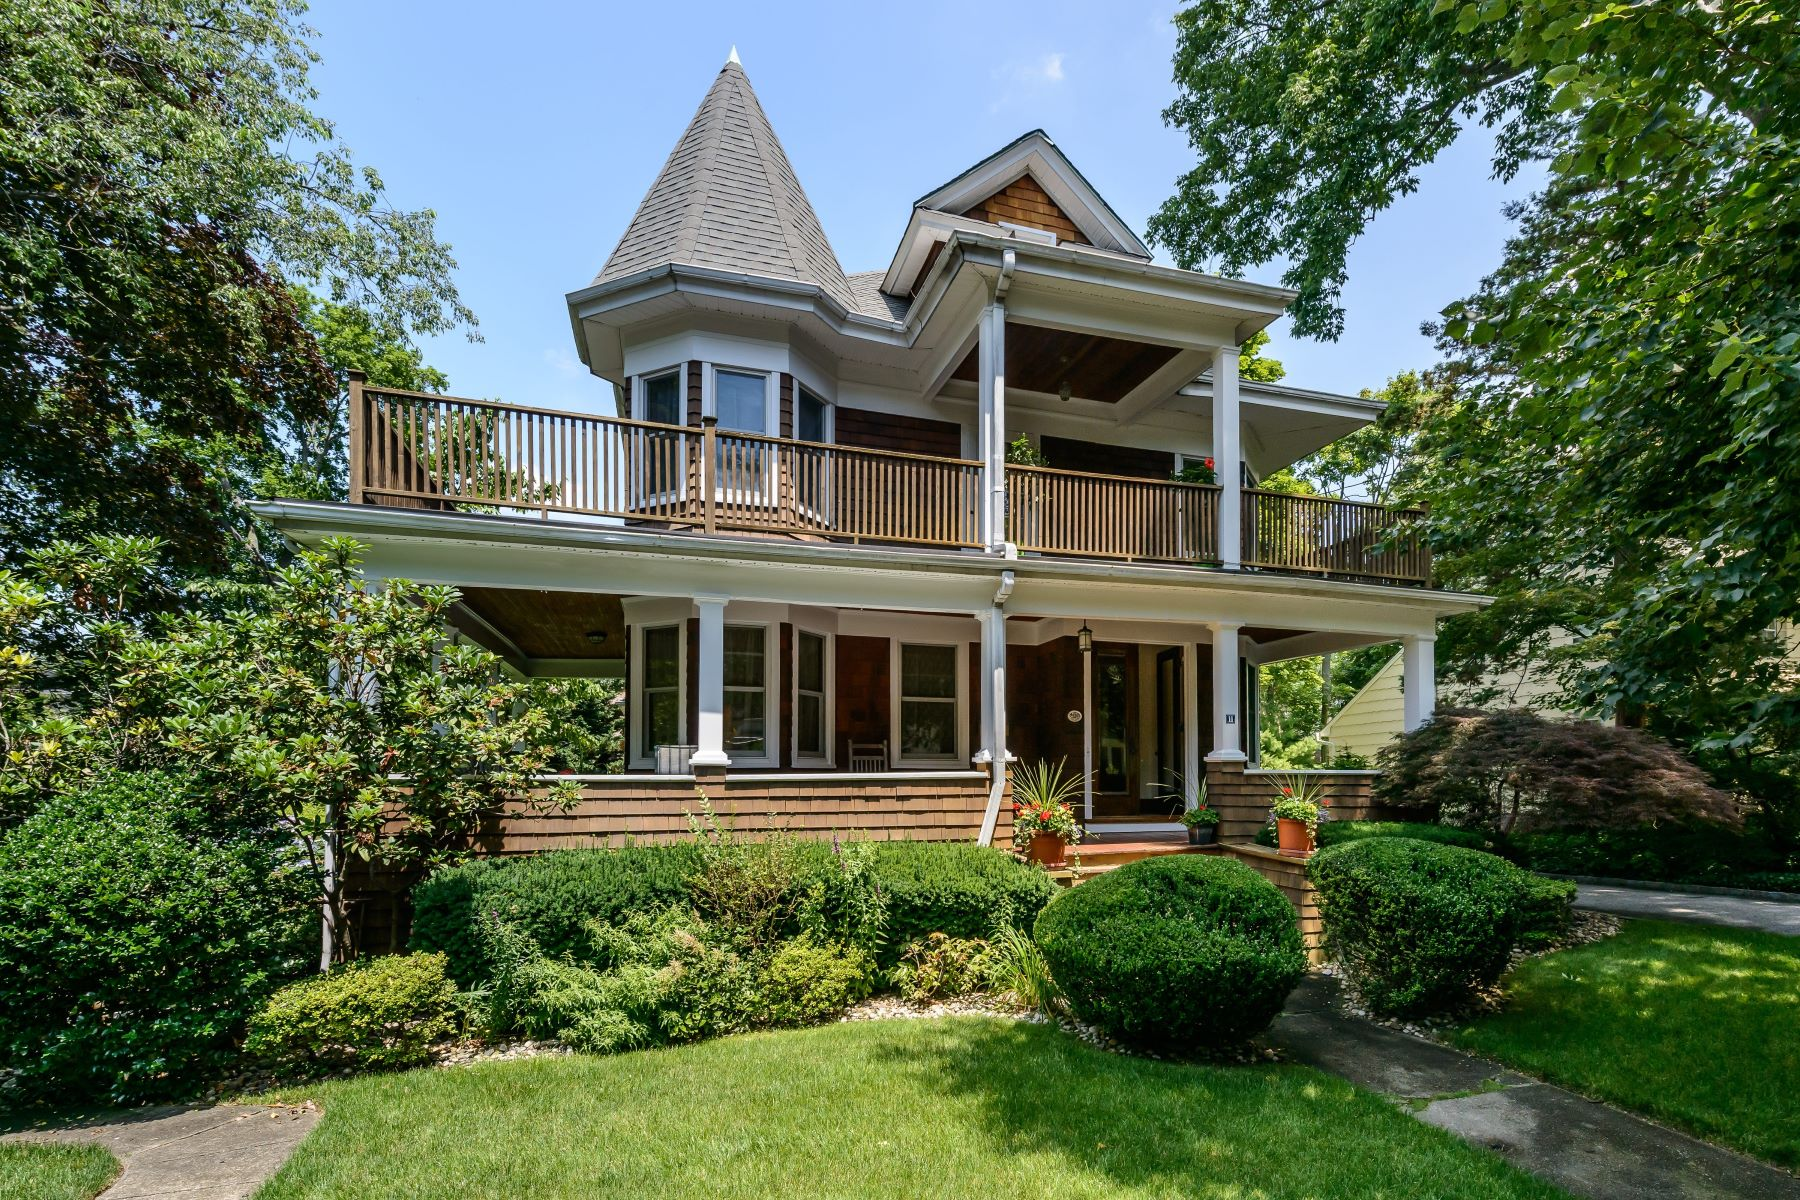 Single Family Home for Sale at Colonial 11 Reid Ave Port Washington, New York, 11050 United States